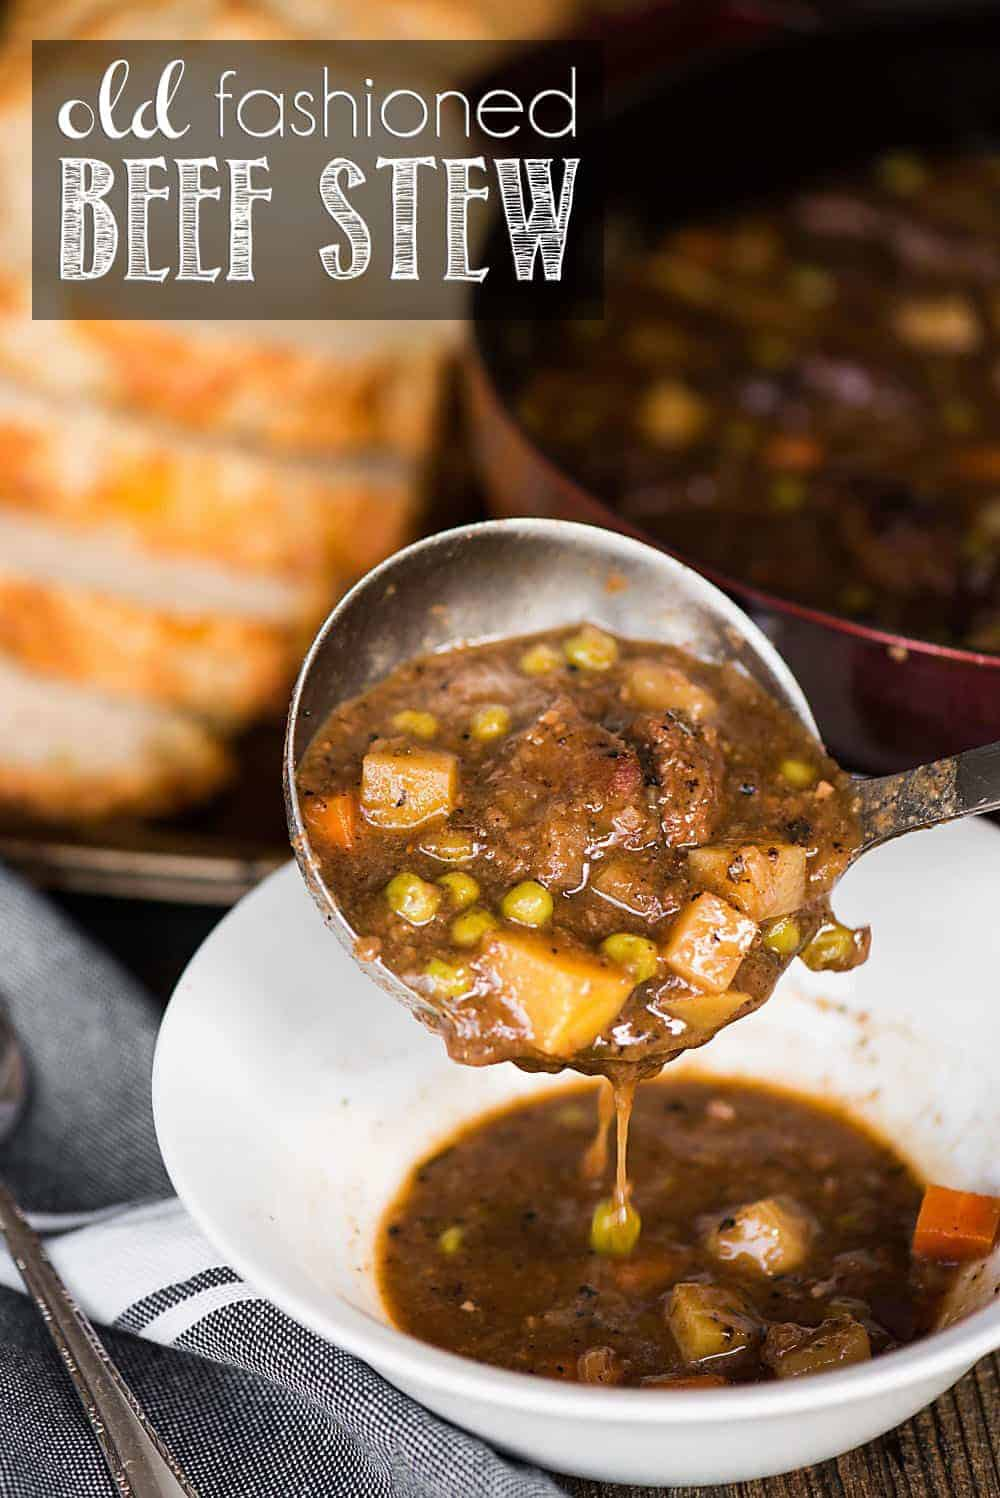 Old Fashioned Beef Stew is a hearty dinner with tender meat and soft potatoes that can be made in the crockpot or on the stove top.